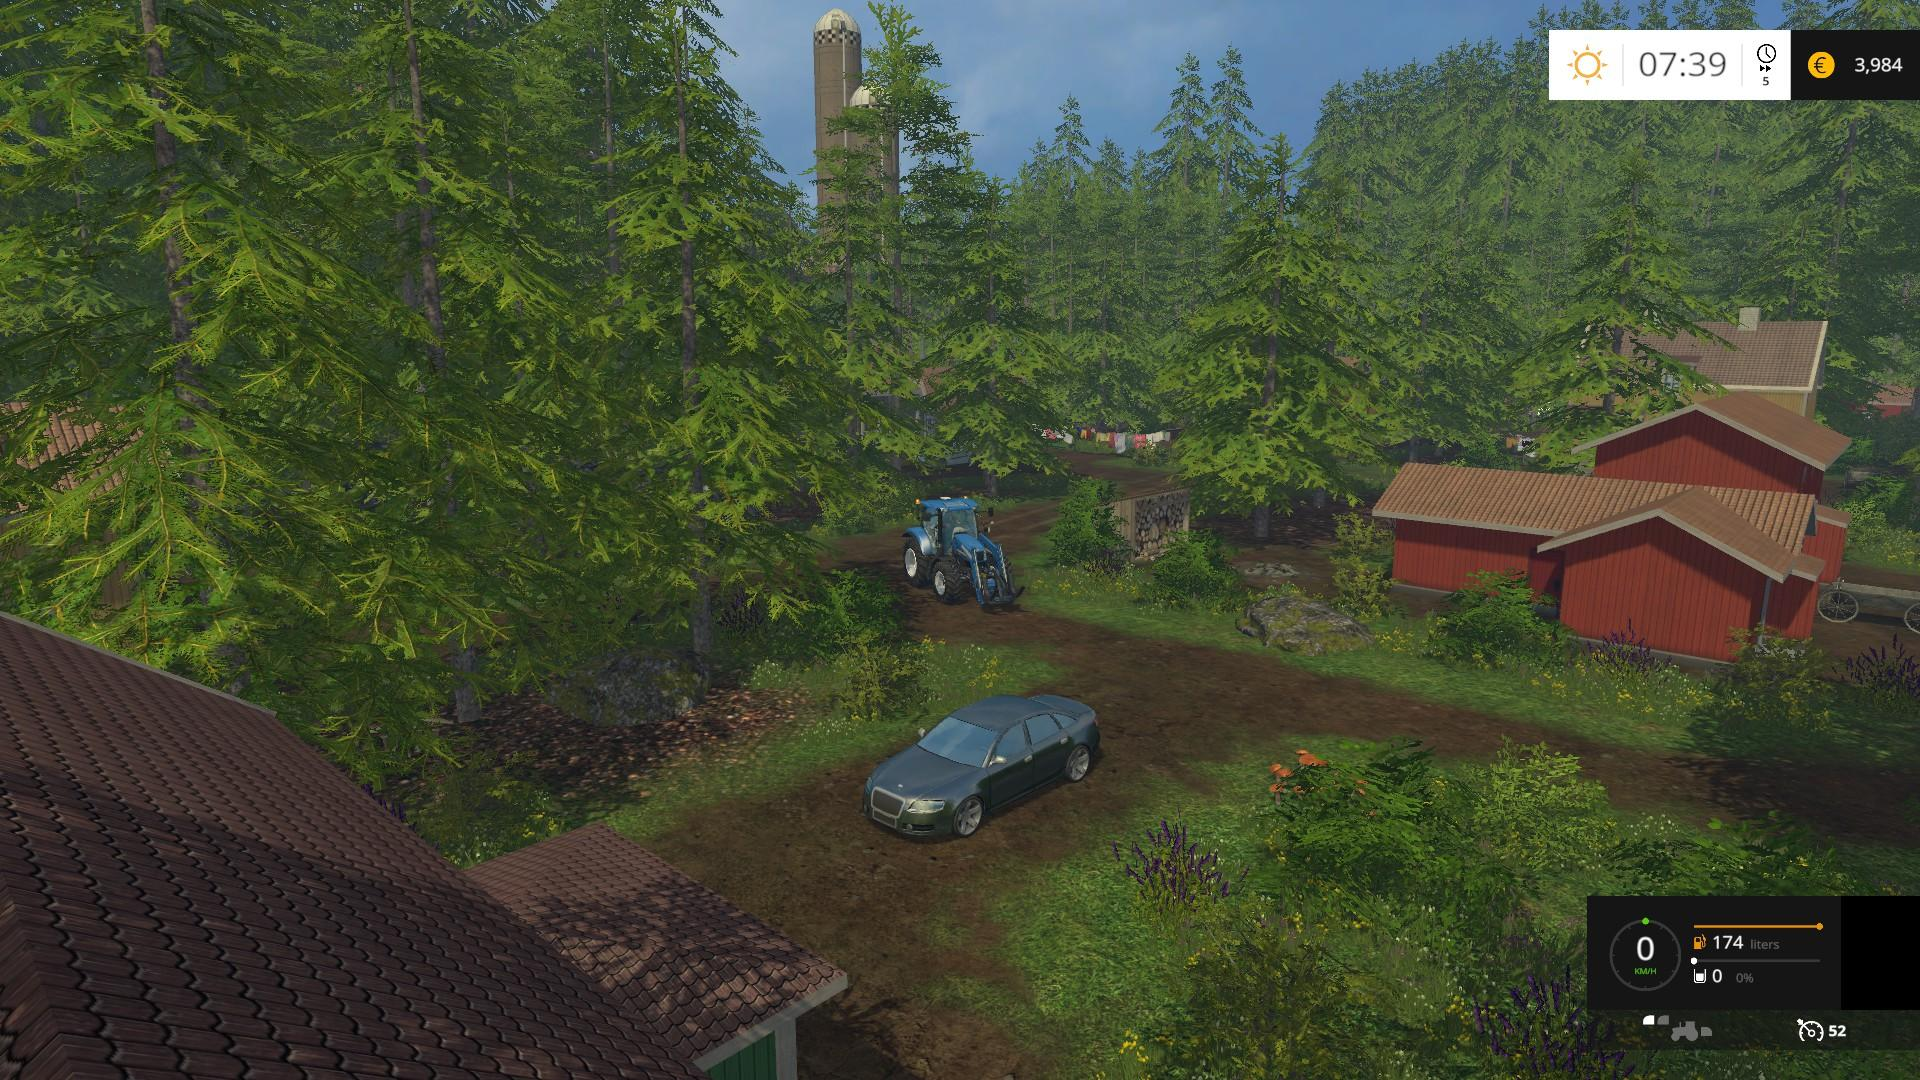 FOREST ISLAND NORWAY V MAP Farming Simulator - Norway map farming simulator 2015